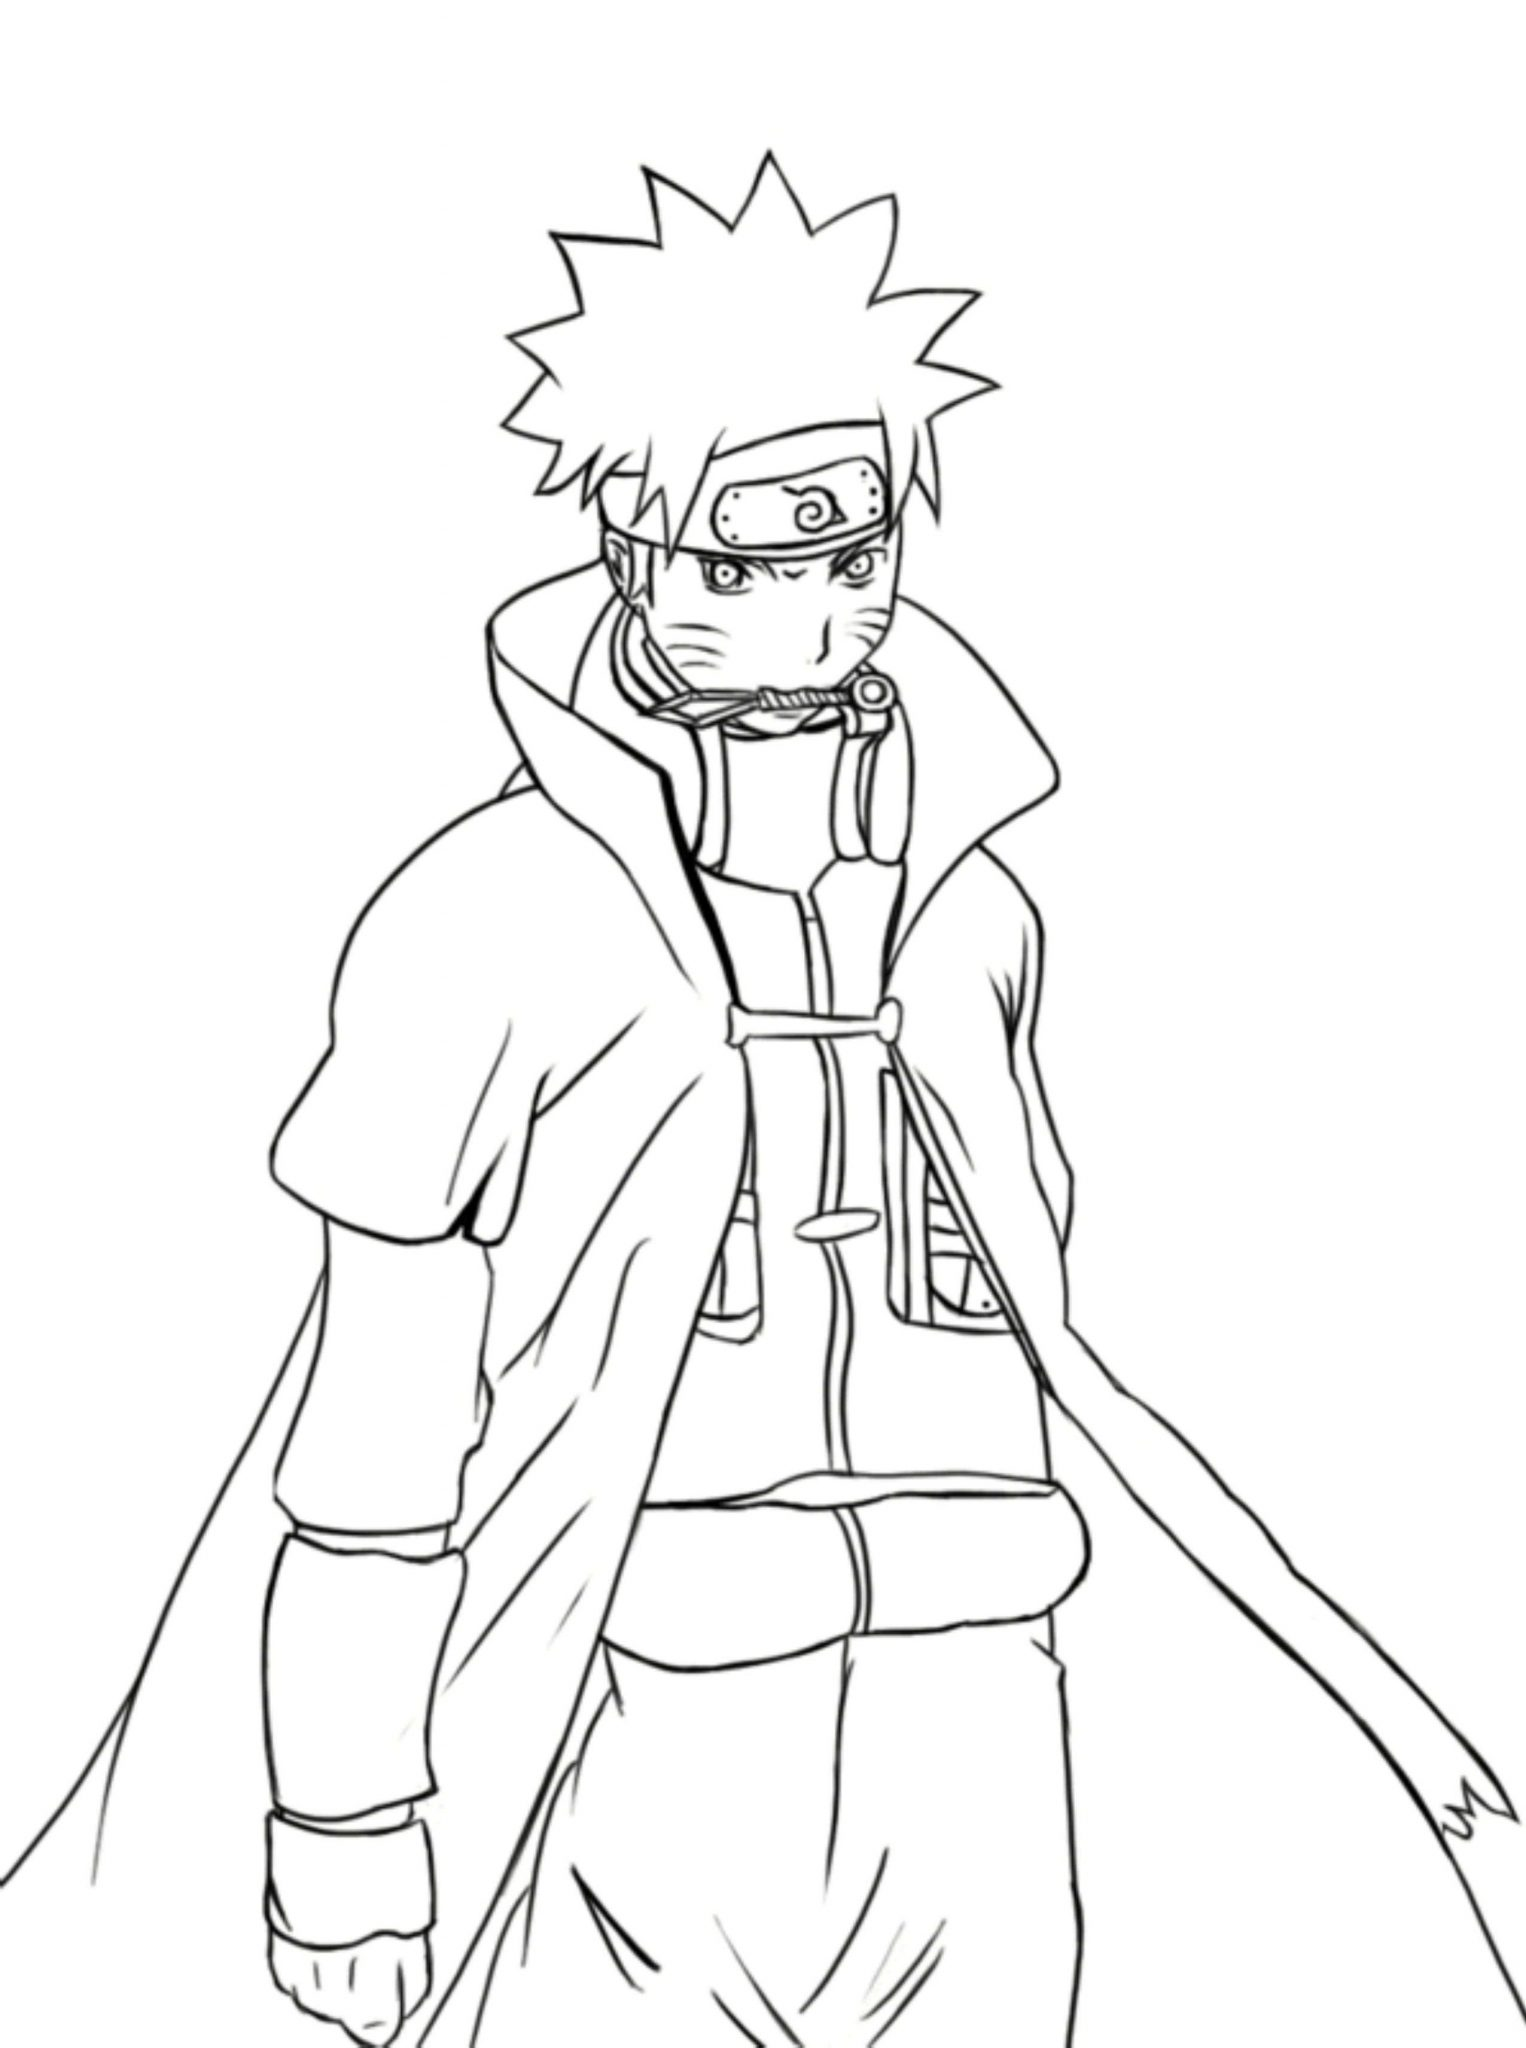 Naruto Shippuden Coloring Pages Free Coloring Pages Download | Xsibe ...